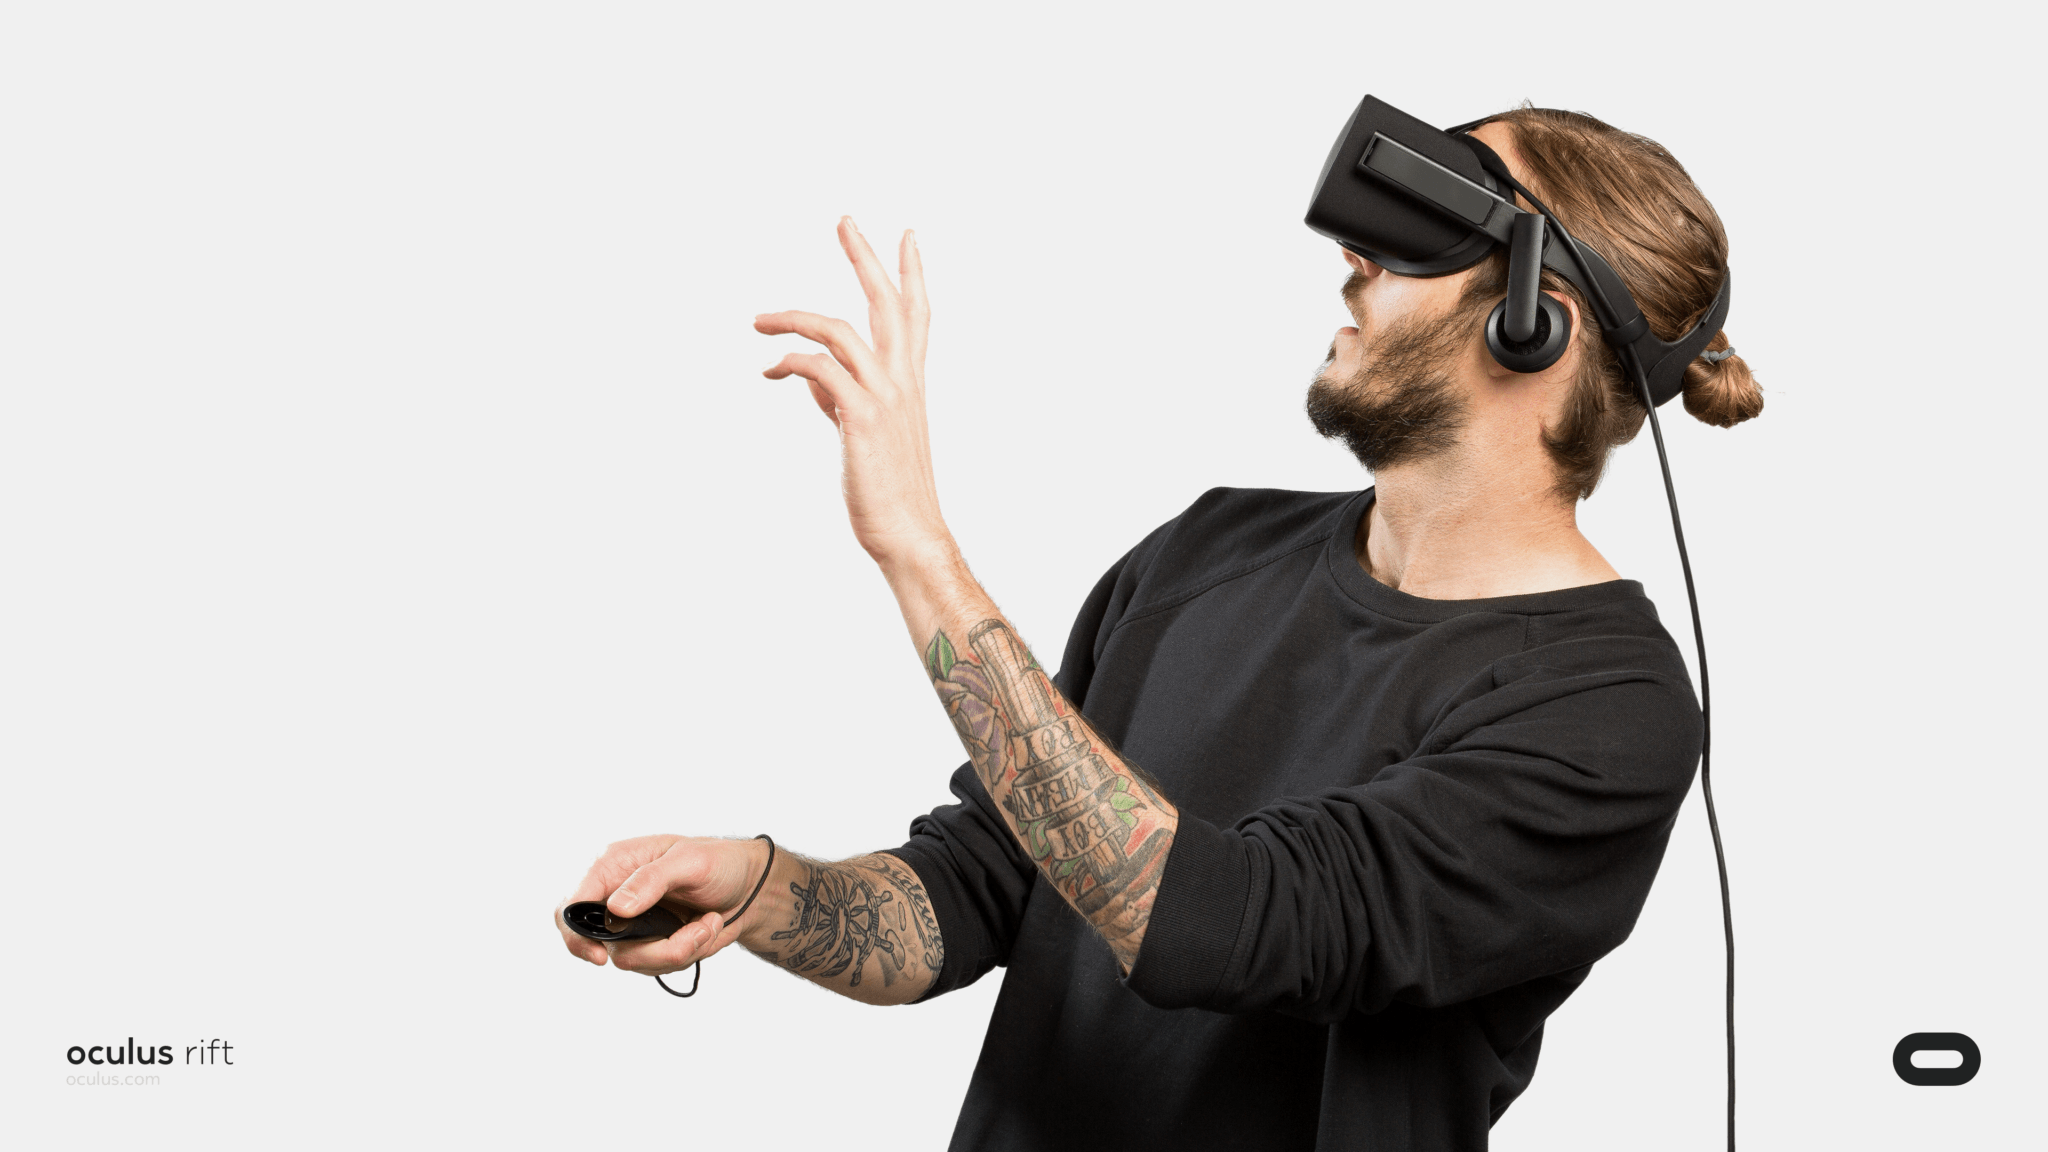 Software error causes mass Oculus Rift outage